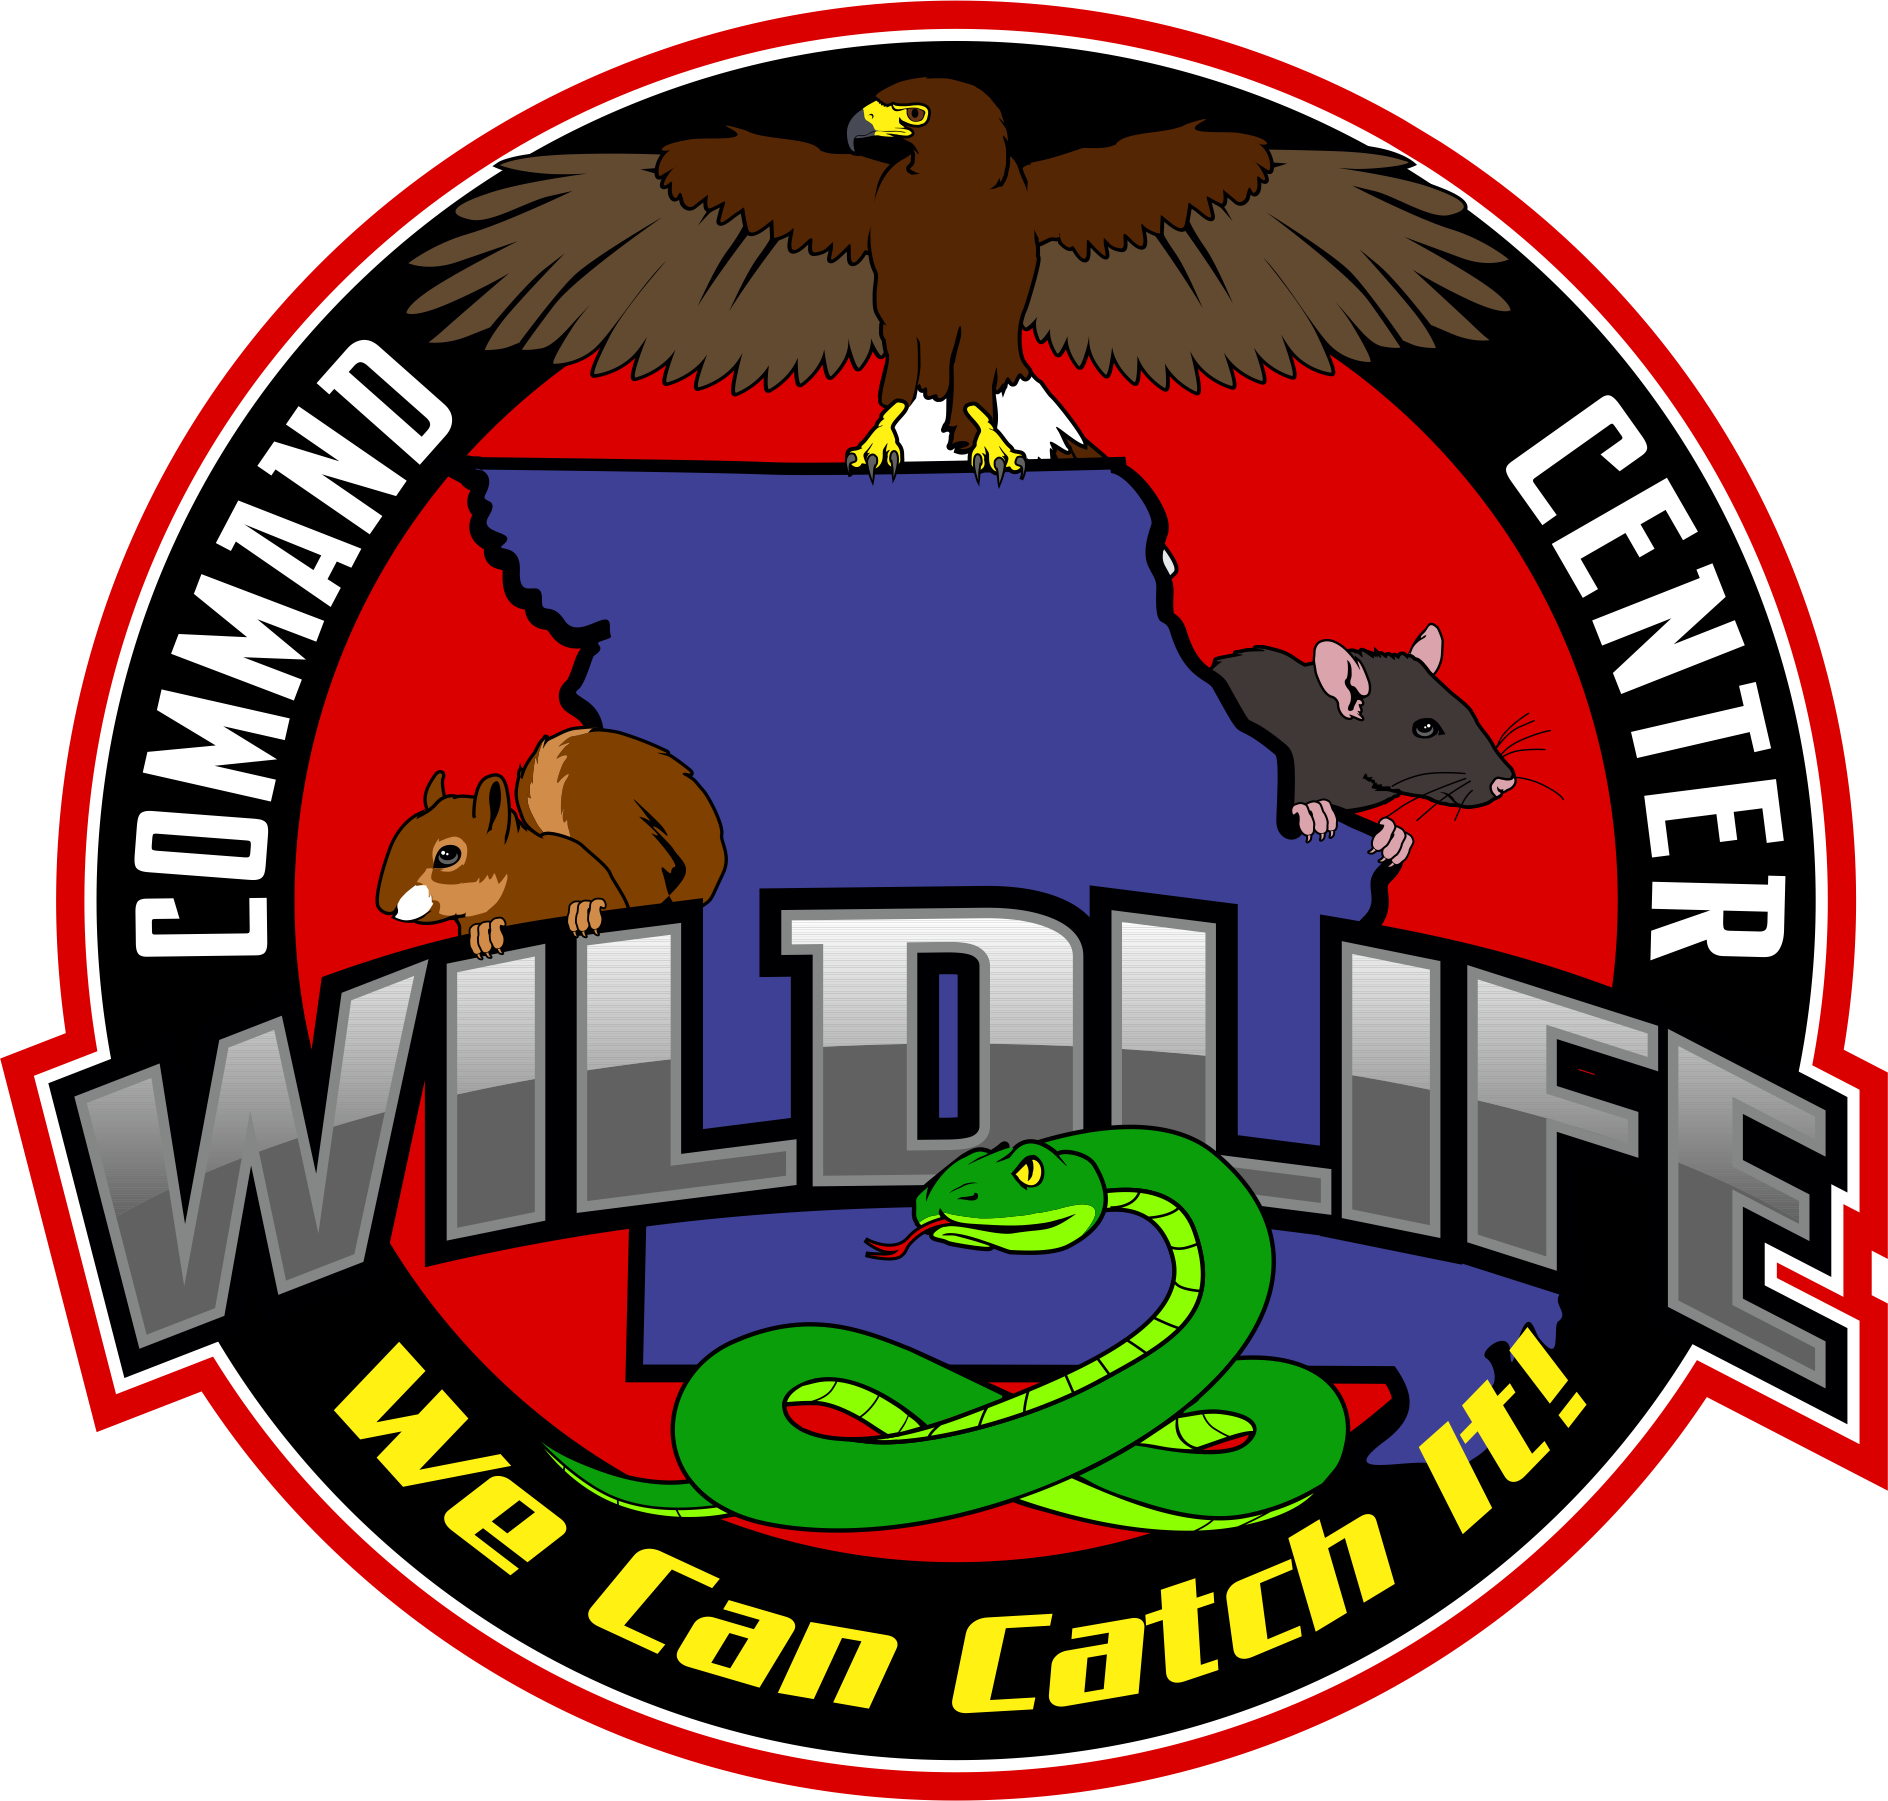 Wildlife Command Center